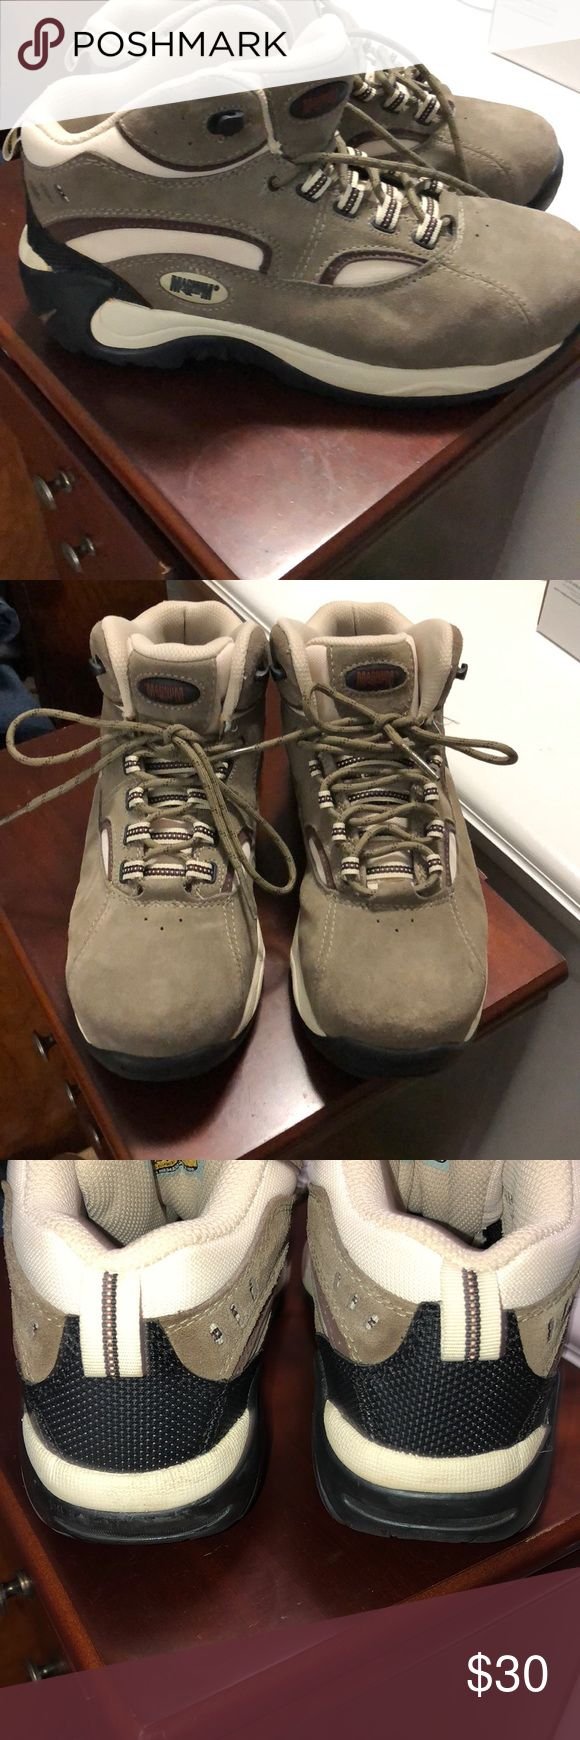 Magnum boots Good condition. Just a little worn on left heel. ( See pic ) Magnum Shoes